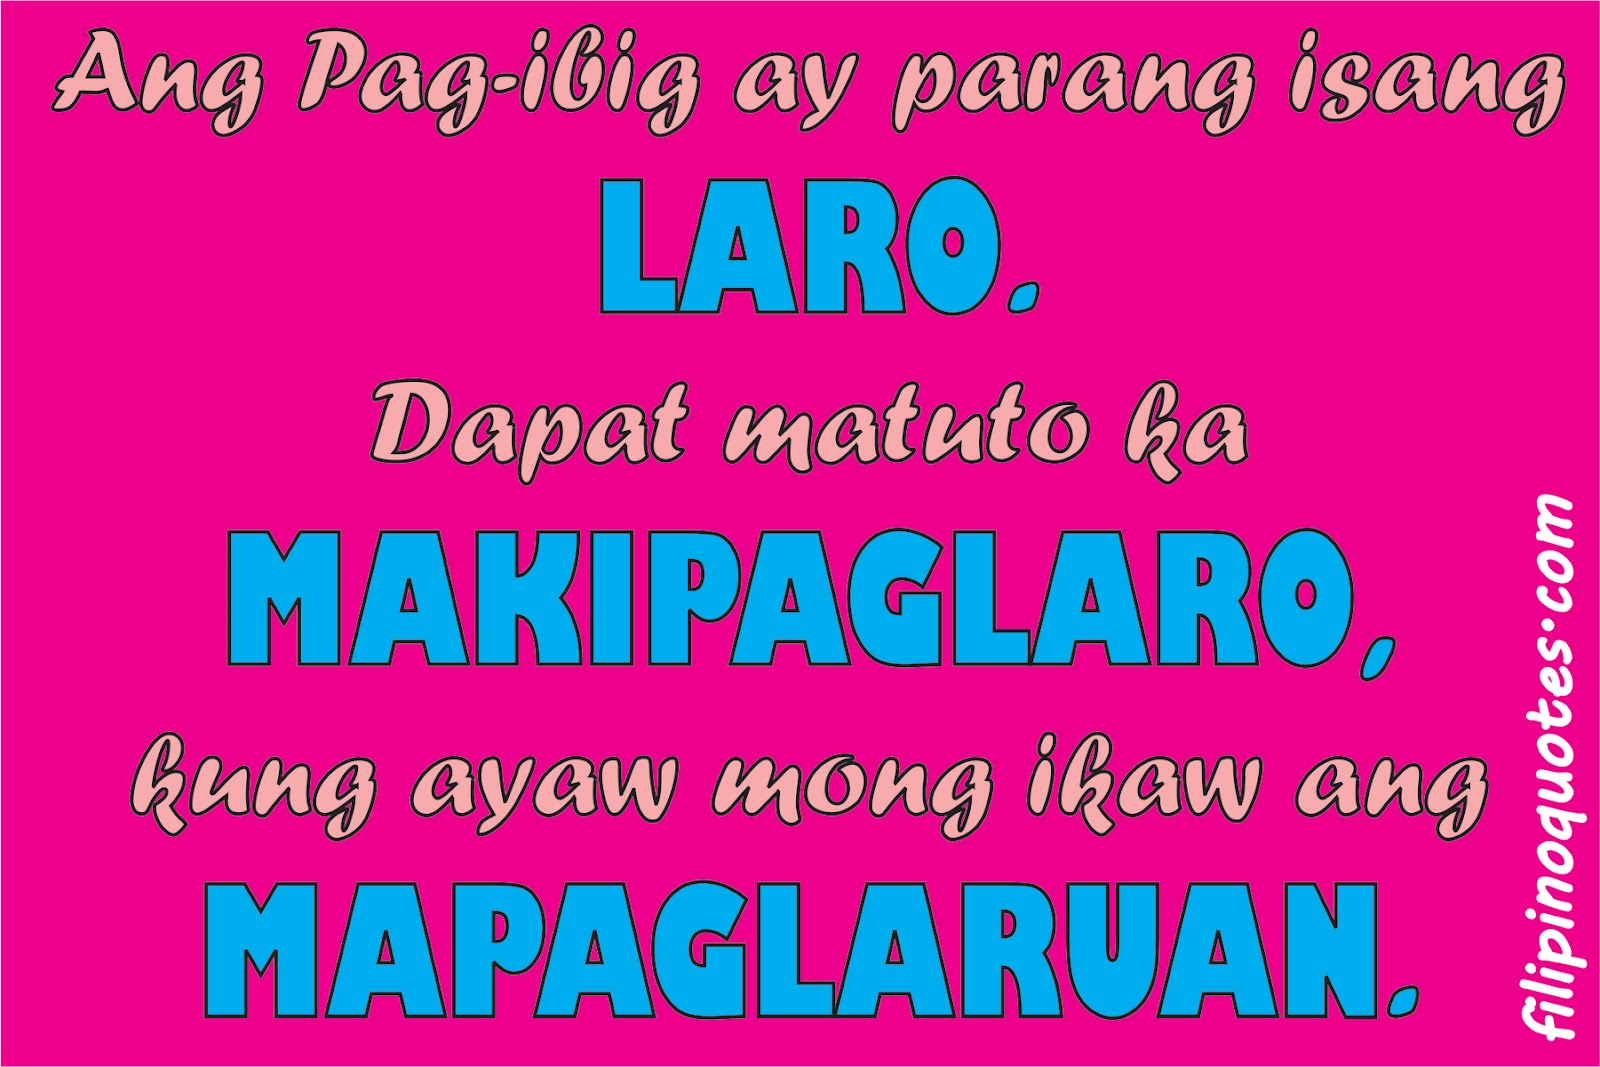 Banats Love Quotes Tagalog : Tagalog Love Quotes (May 2012) - Tagalog Love Quotes